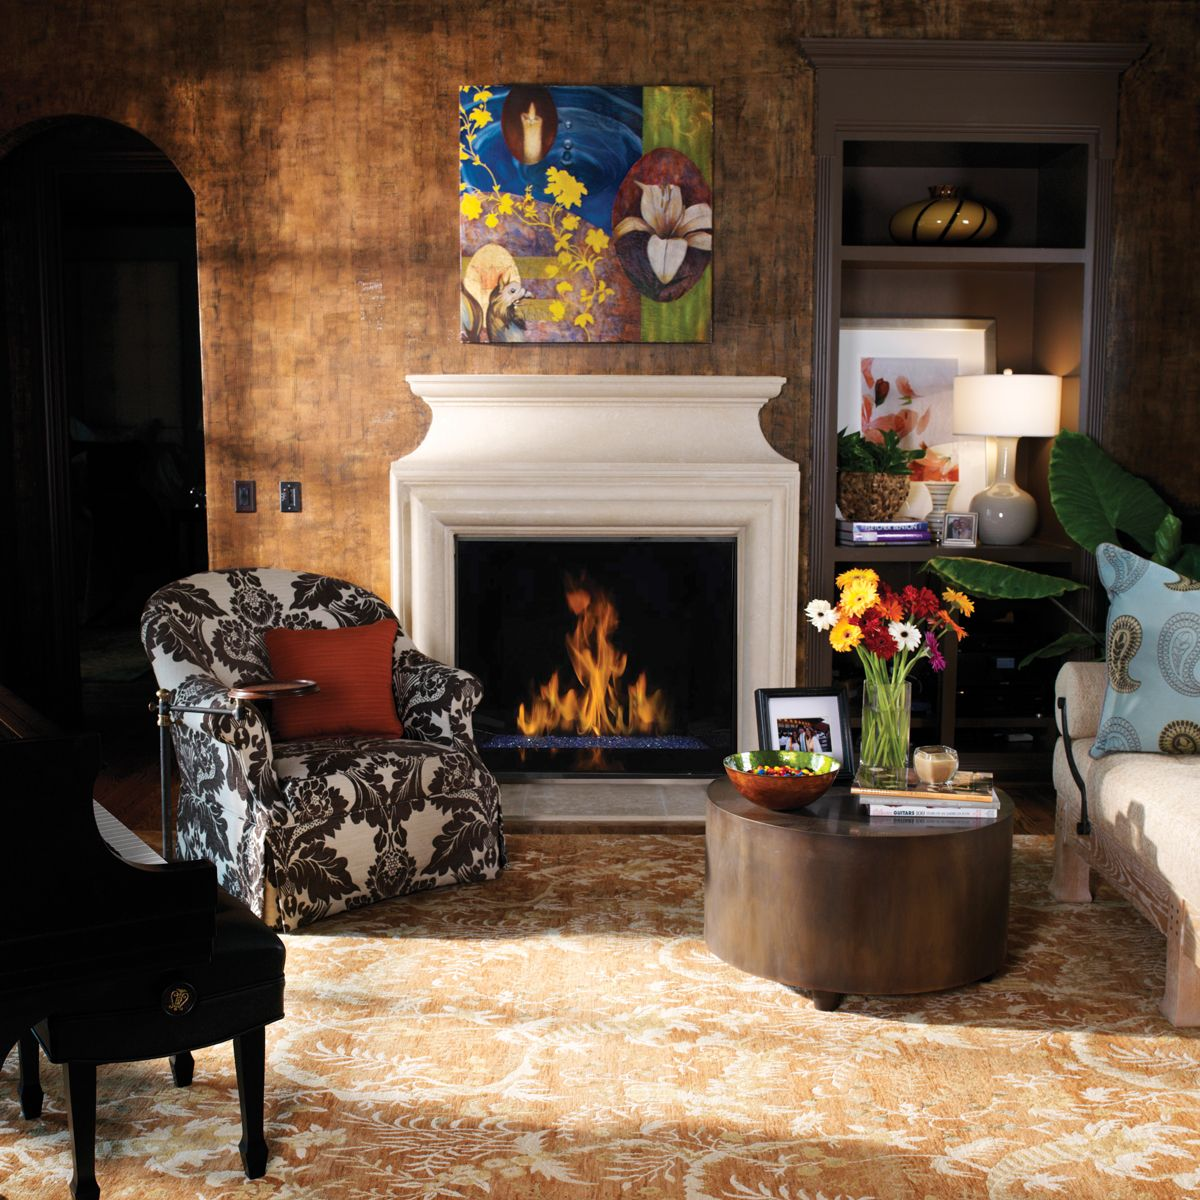 Montebello dlx by astria this exceptional direct vent fireplace montebello dlx by astria this exceptional direct vent fireplace offers the beauty and performance teraionfo